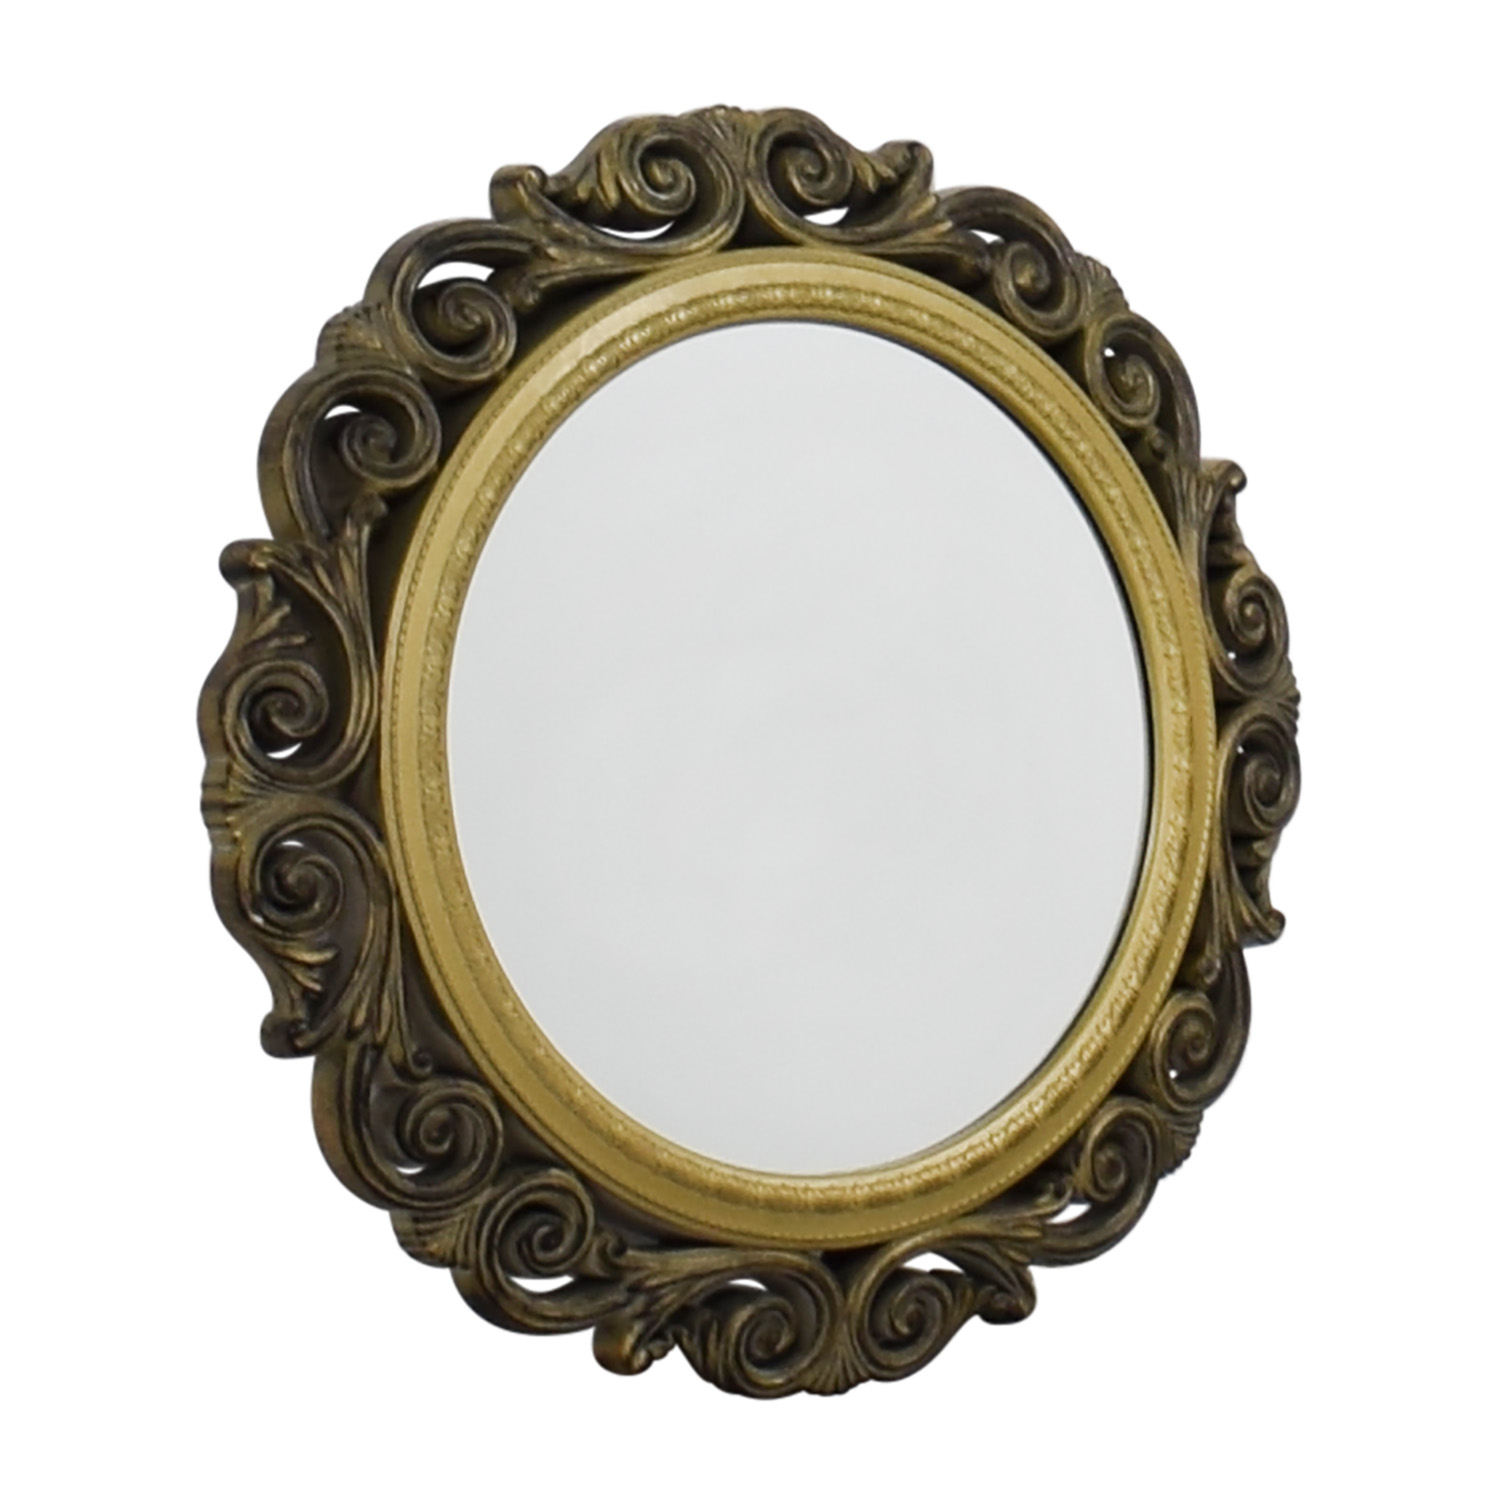 buy Gold Scrolled Frame Round Wall Mirror online